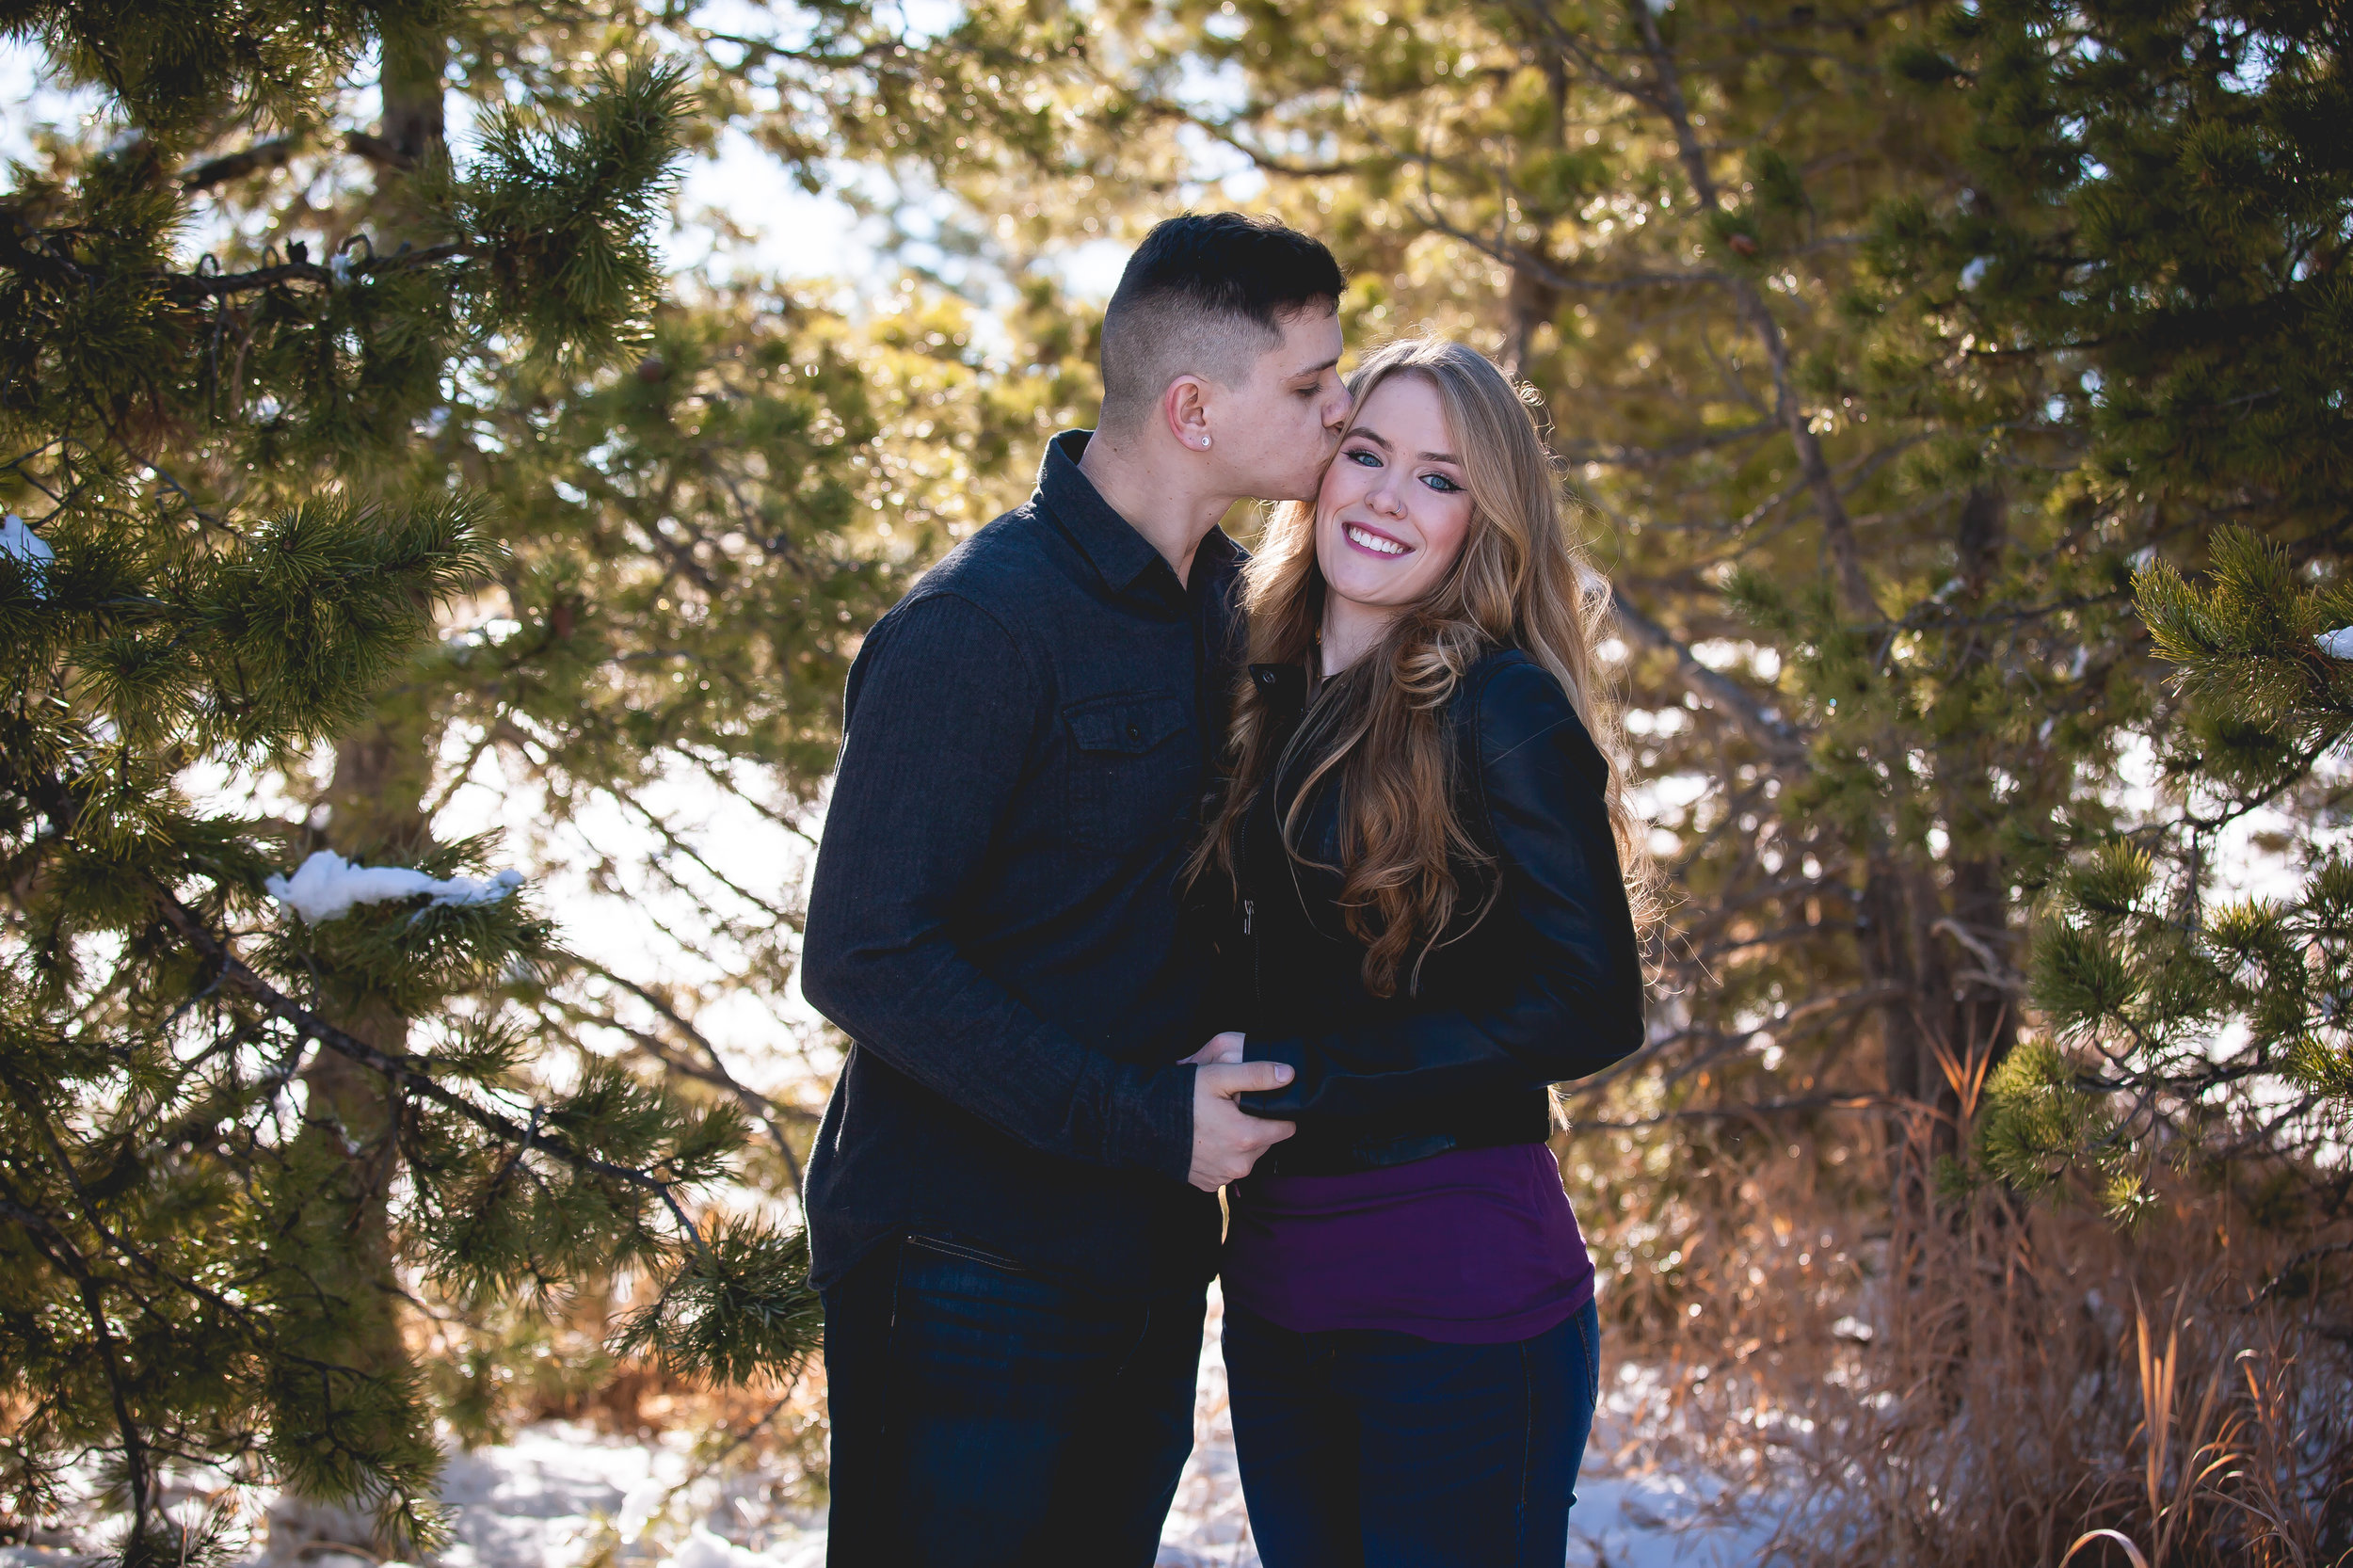 forest engagement session tips durango colorado